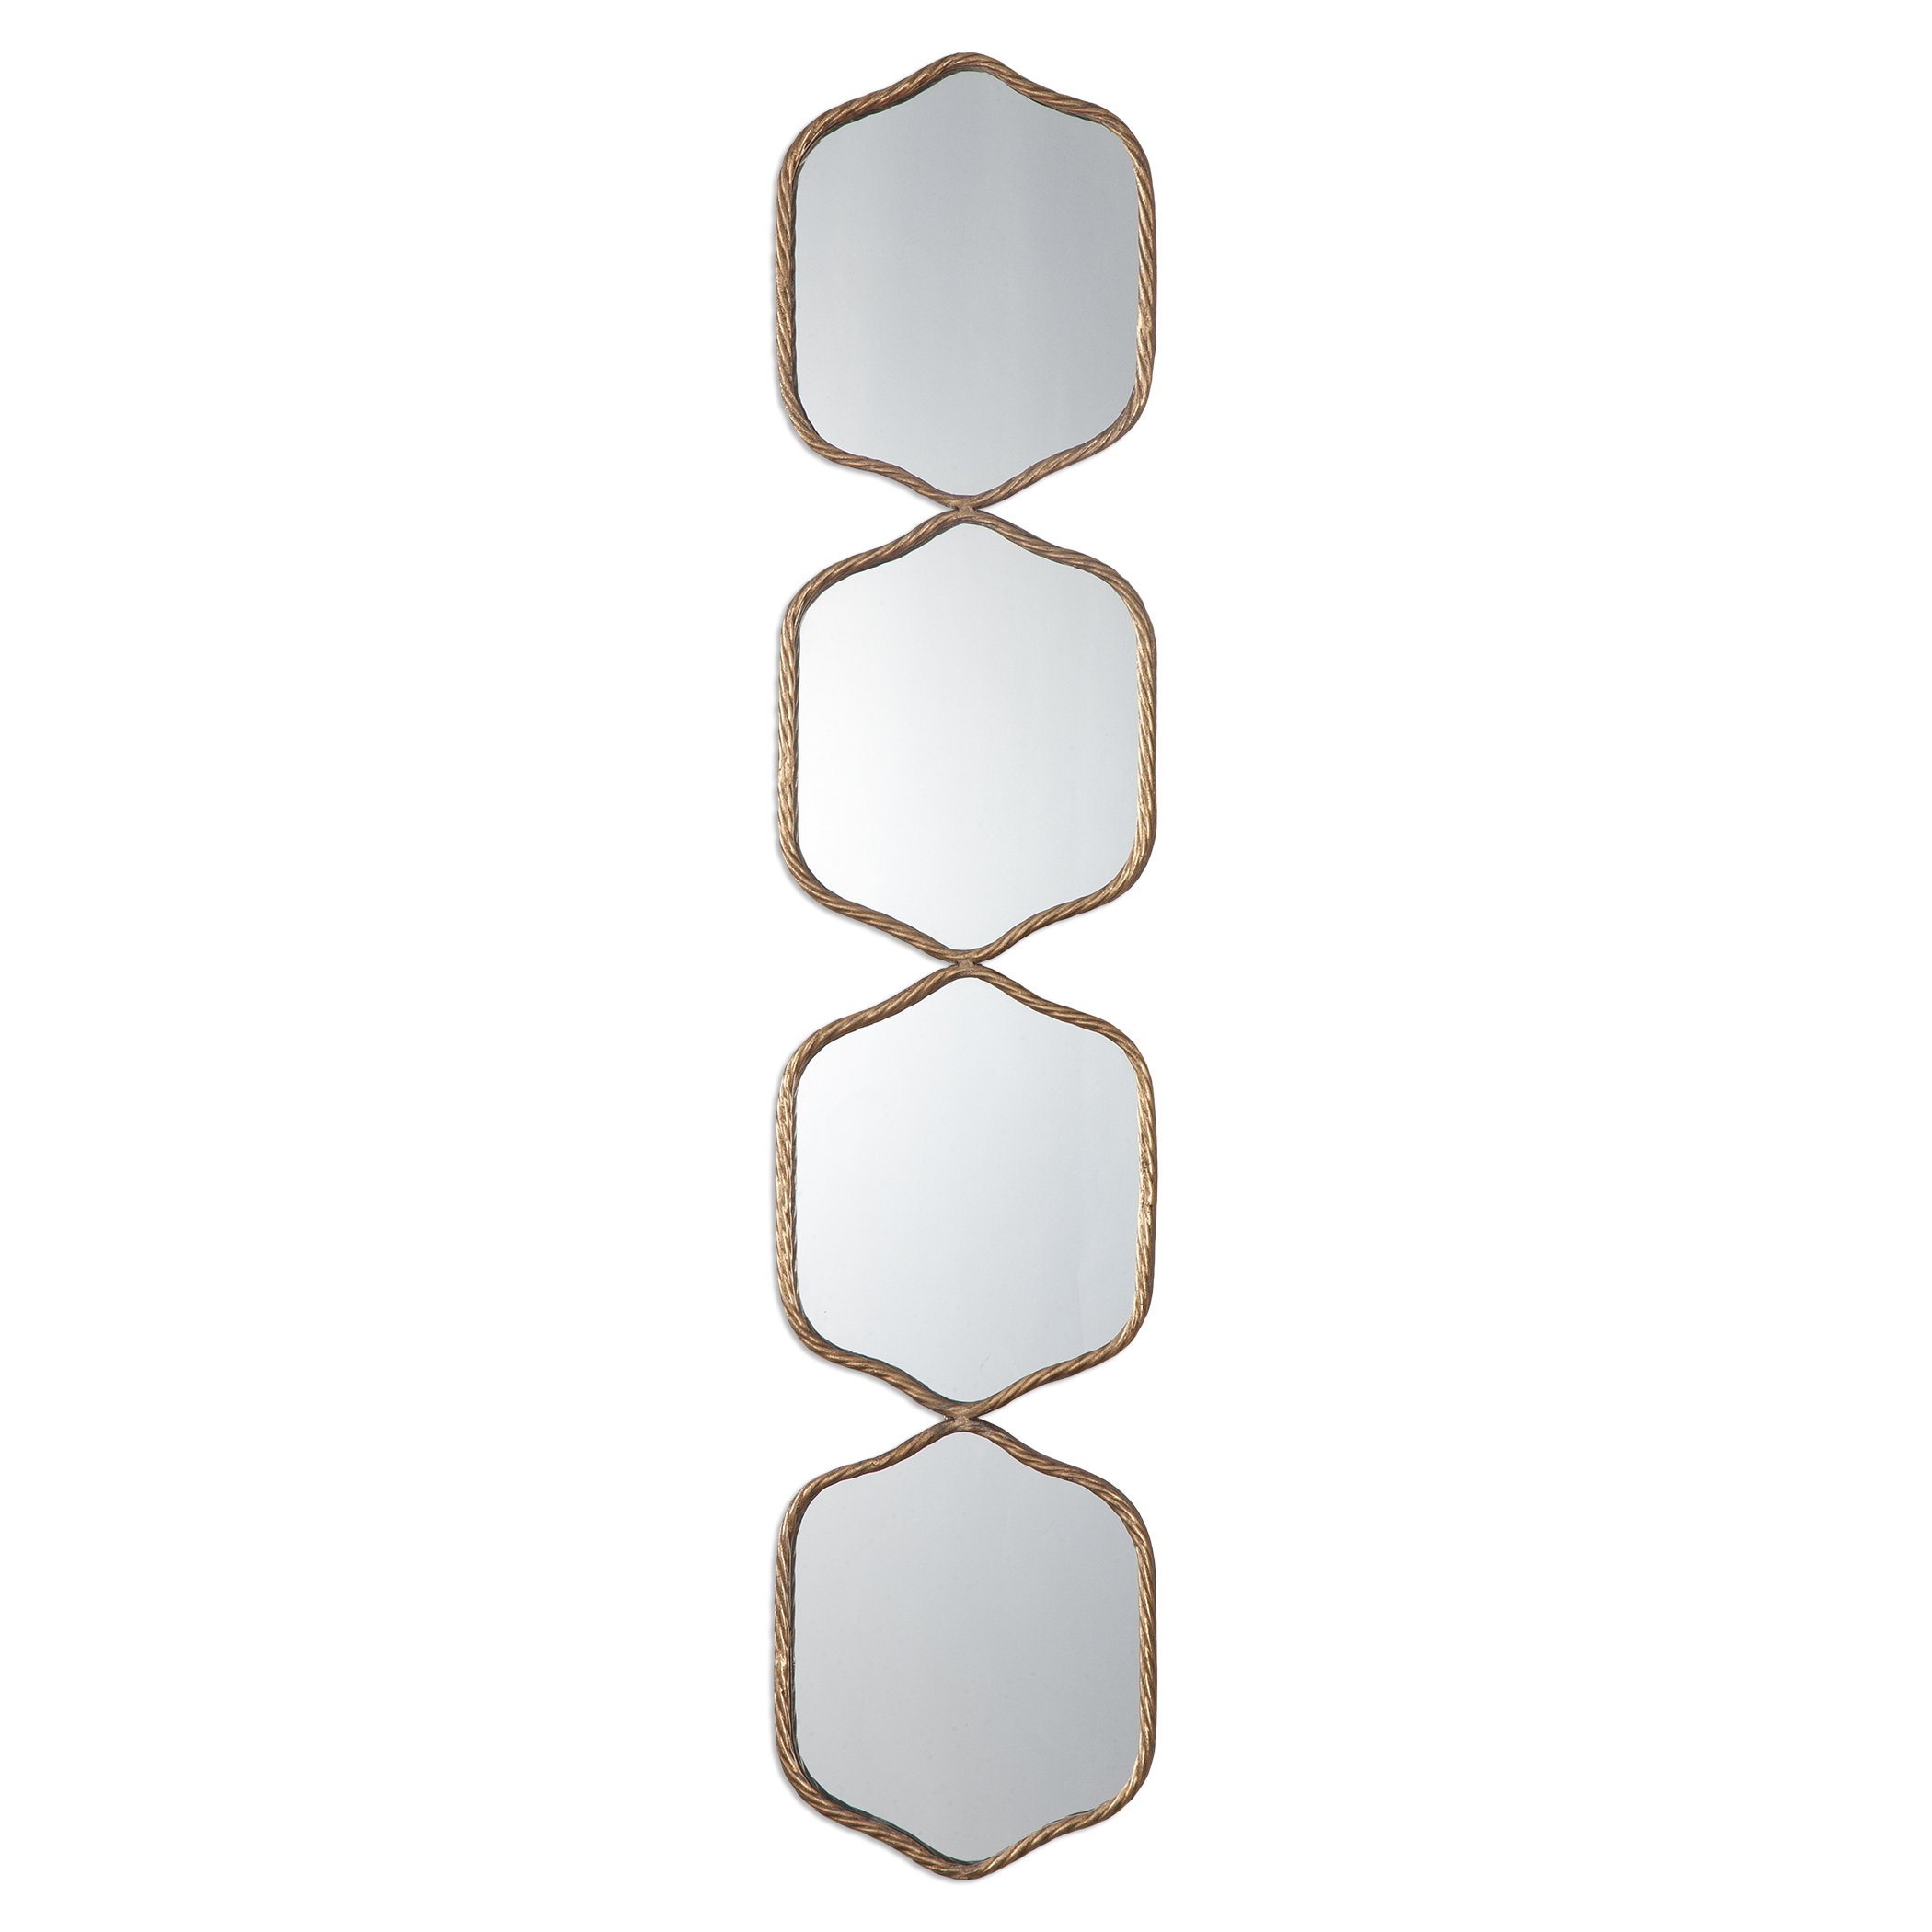 Uttermost Mirrors Myriam Twisted Iron Mirror - Item Number: 09058